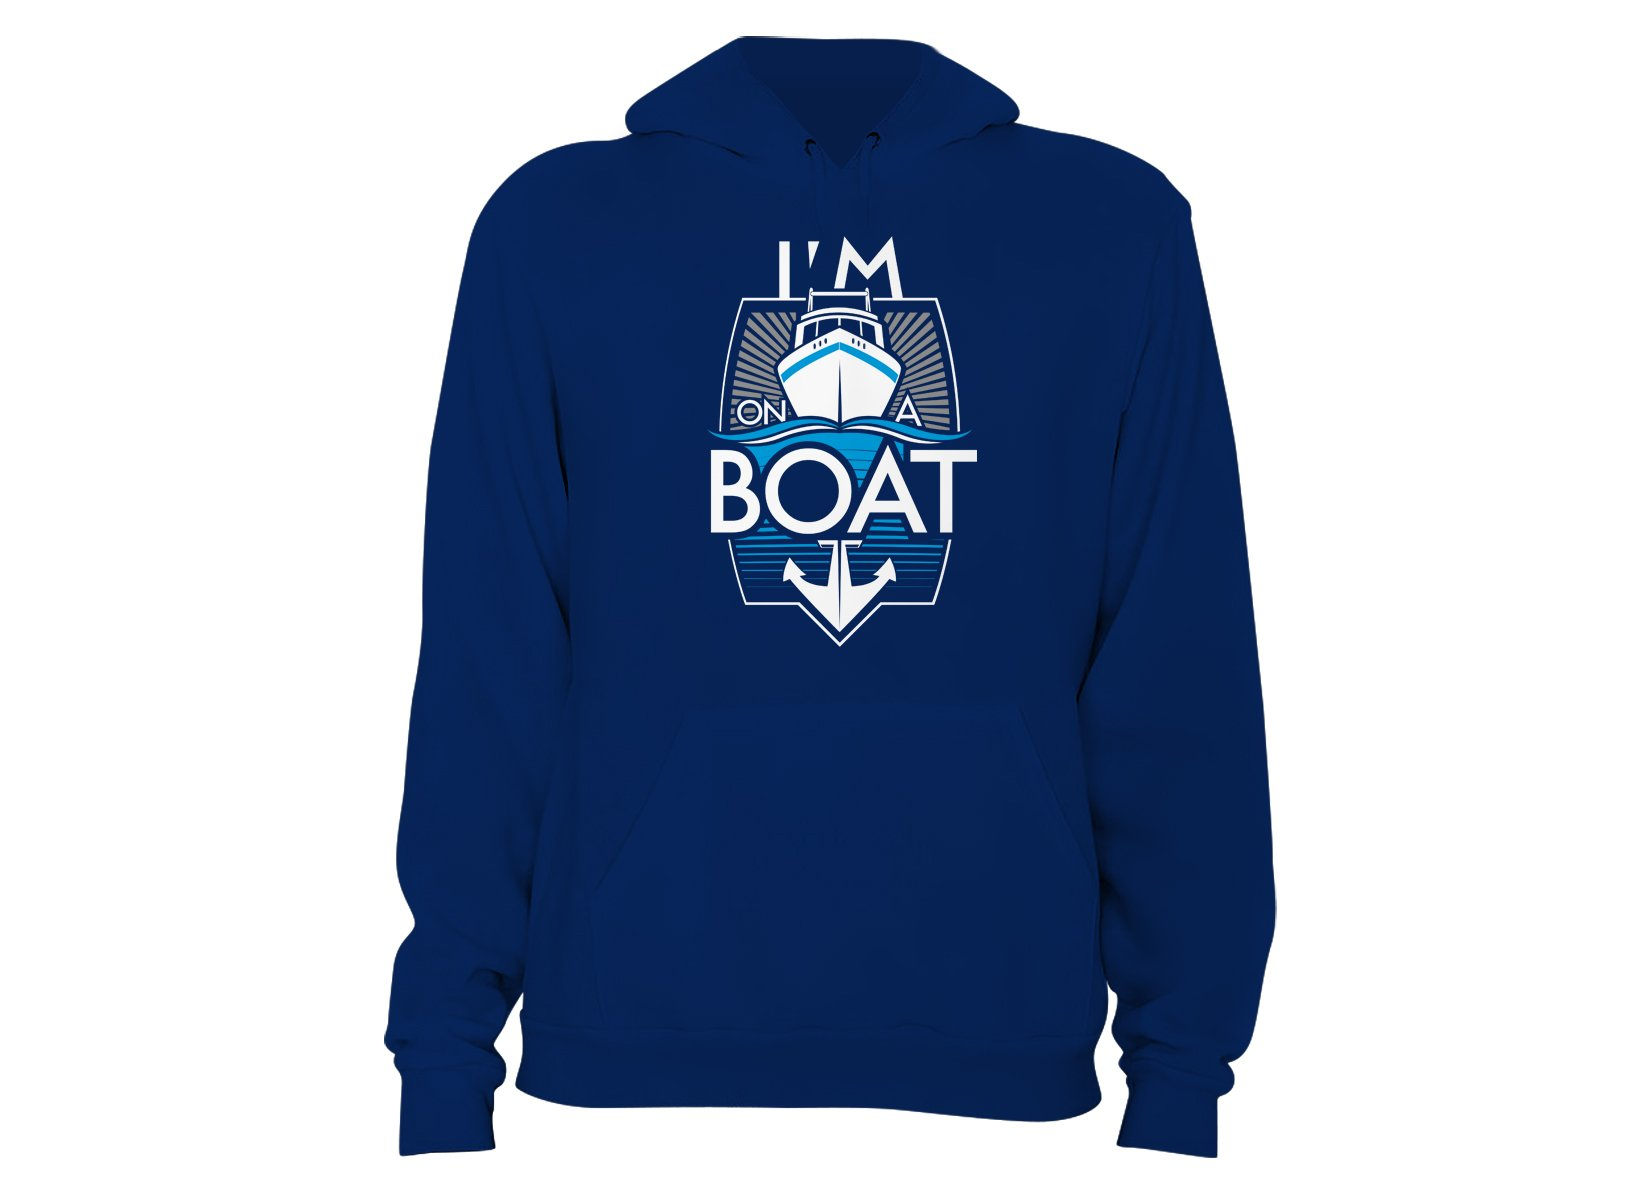 I'm On A Boat on Hoodie